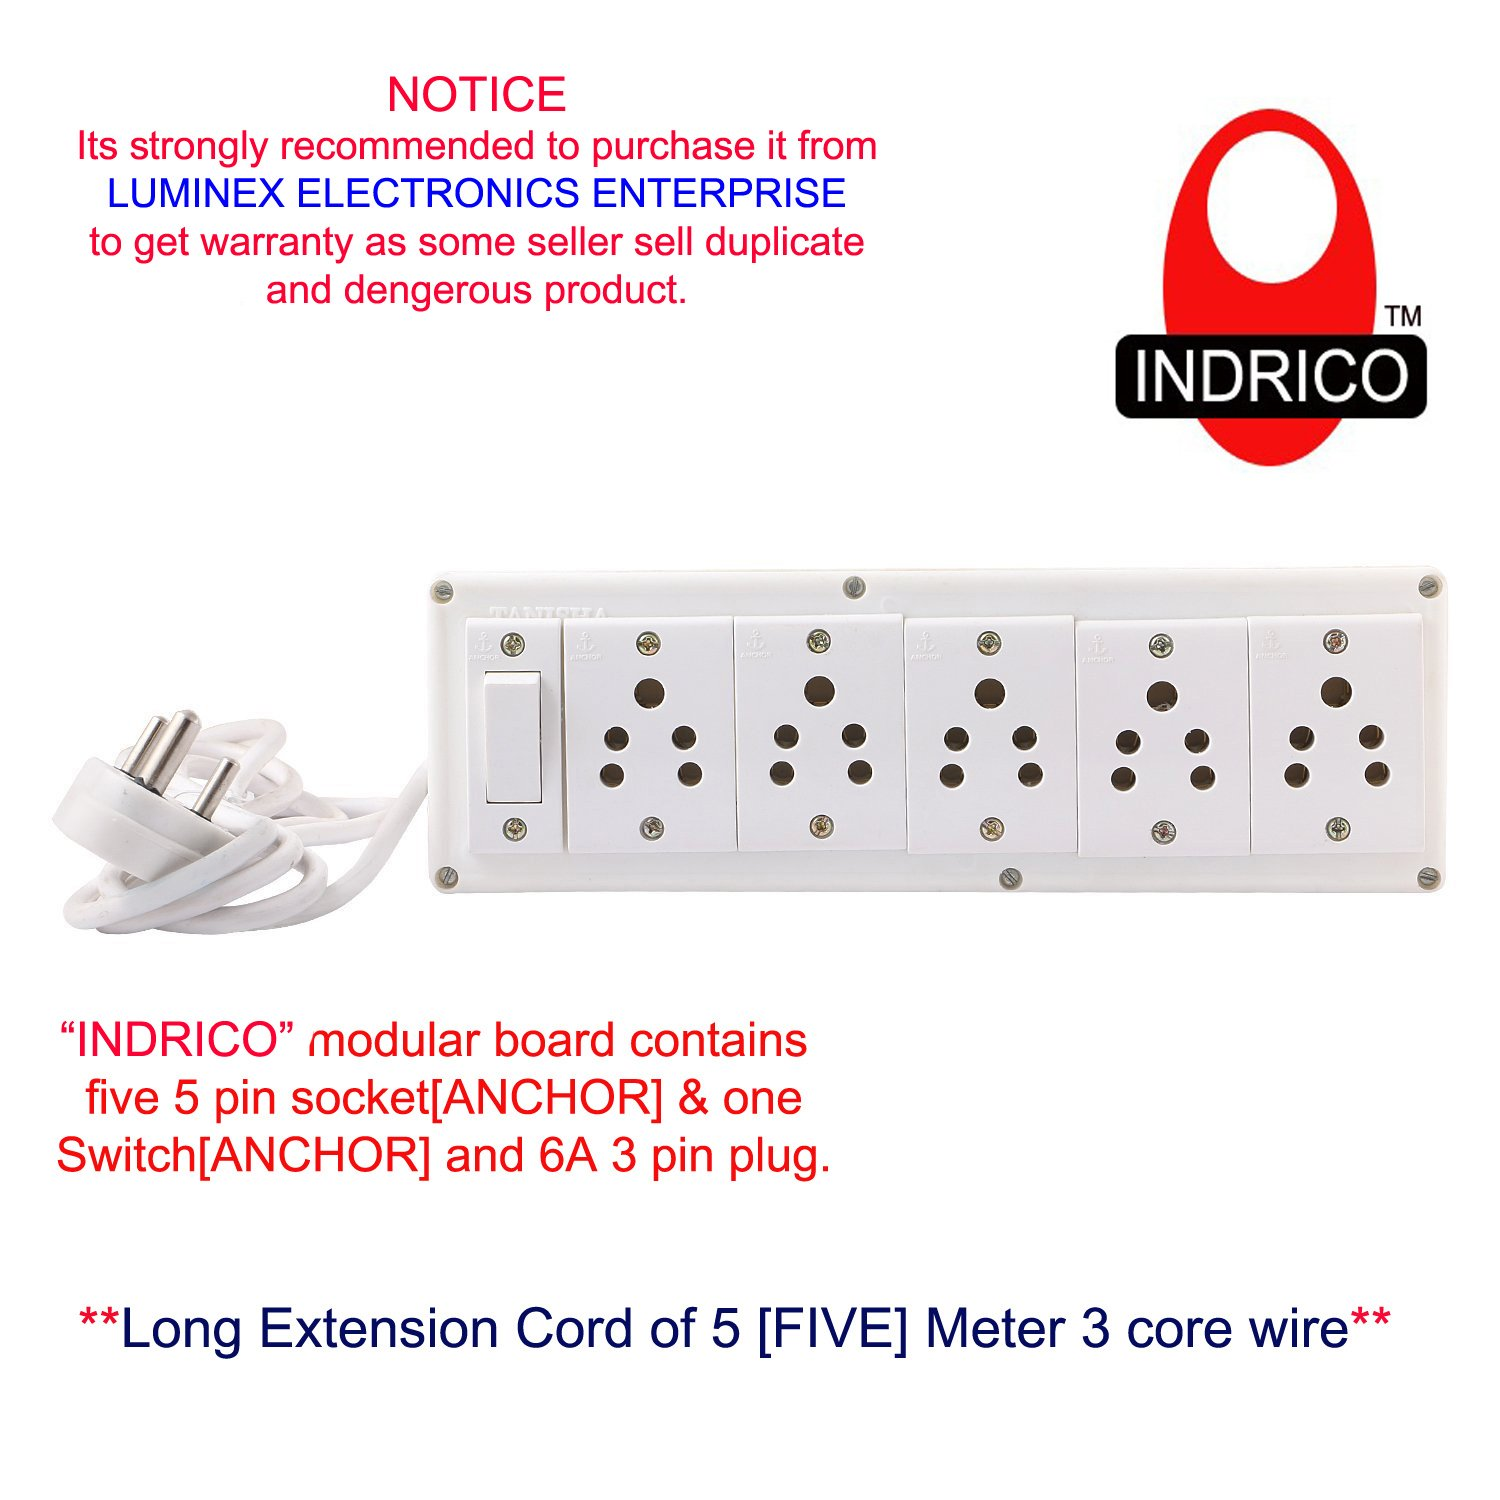 Buy Indrico Extension Electric Switch Board Wire With 5 Anchor Electronic Wiring Socket 6a And One 3 Pin Plug Meter Cord Online At Low